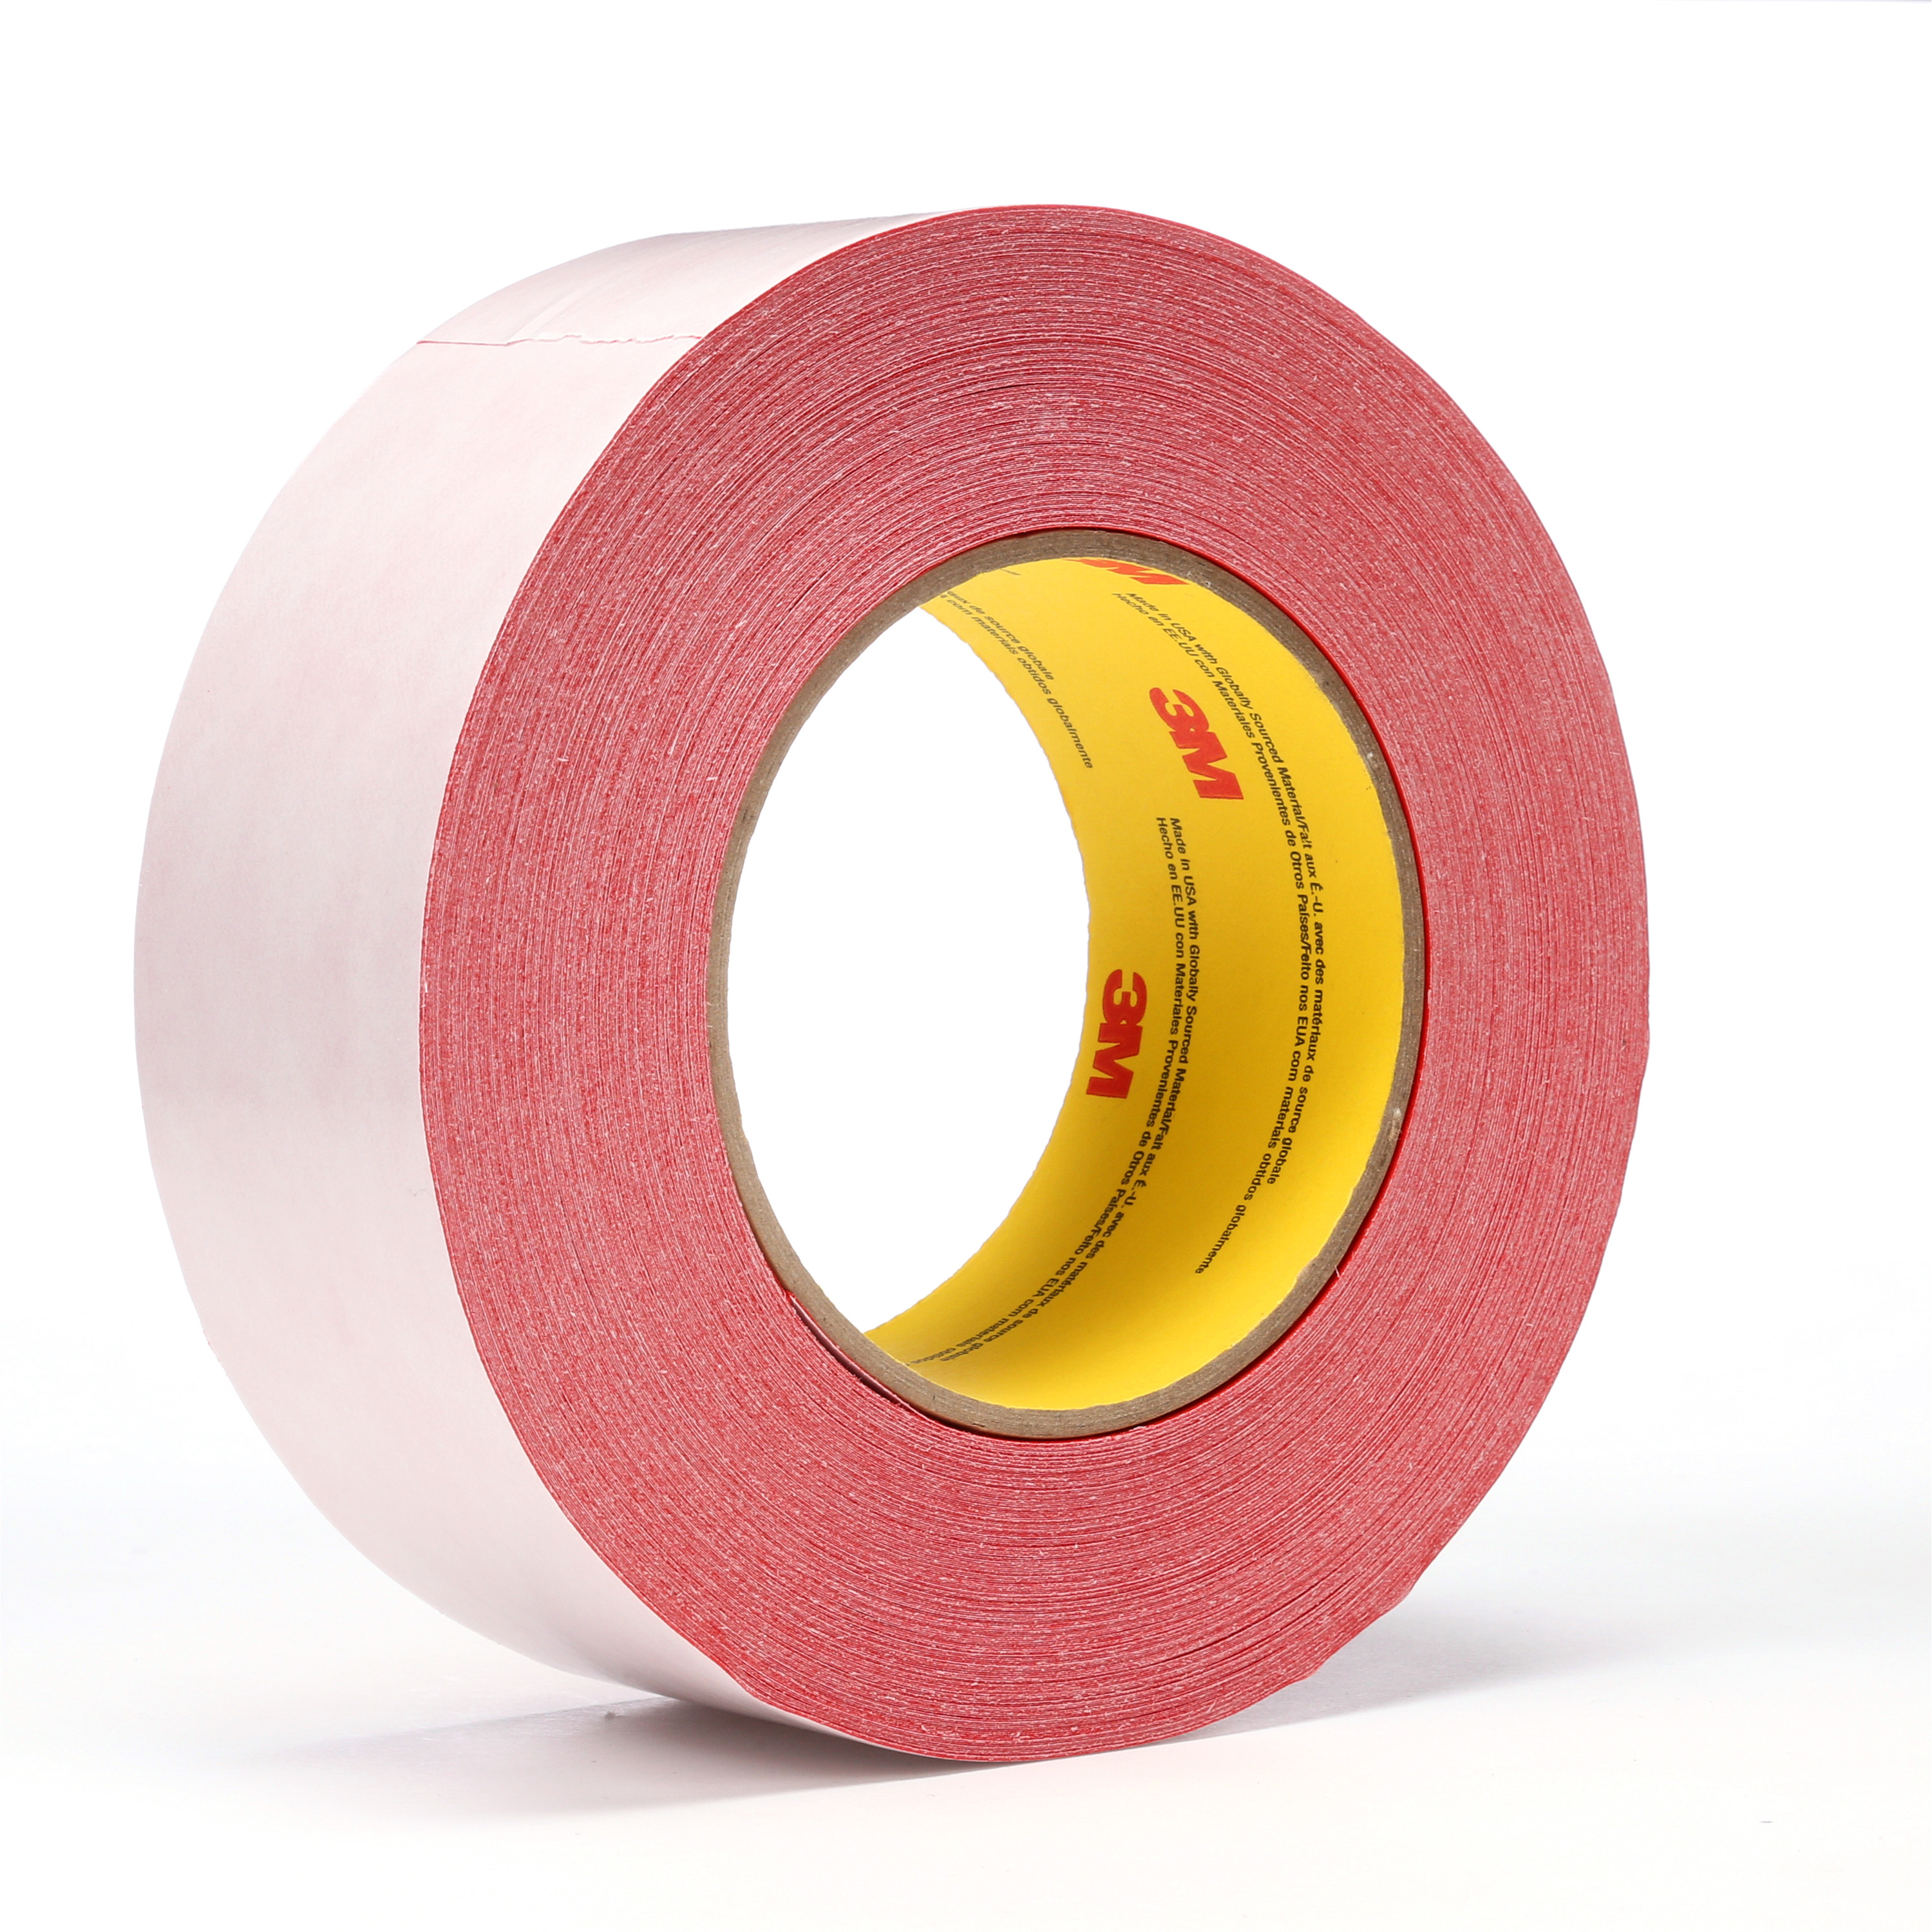 3M™ Double Coated Tape 9737R, Red, 48 mm x 55 m, 3.5 mil, 24 rolls per case